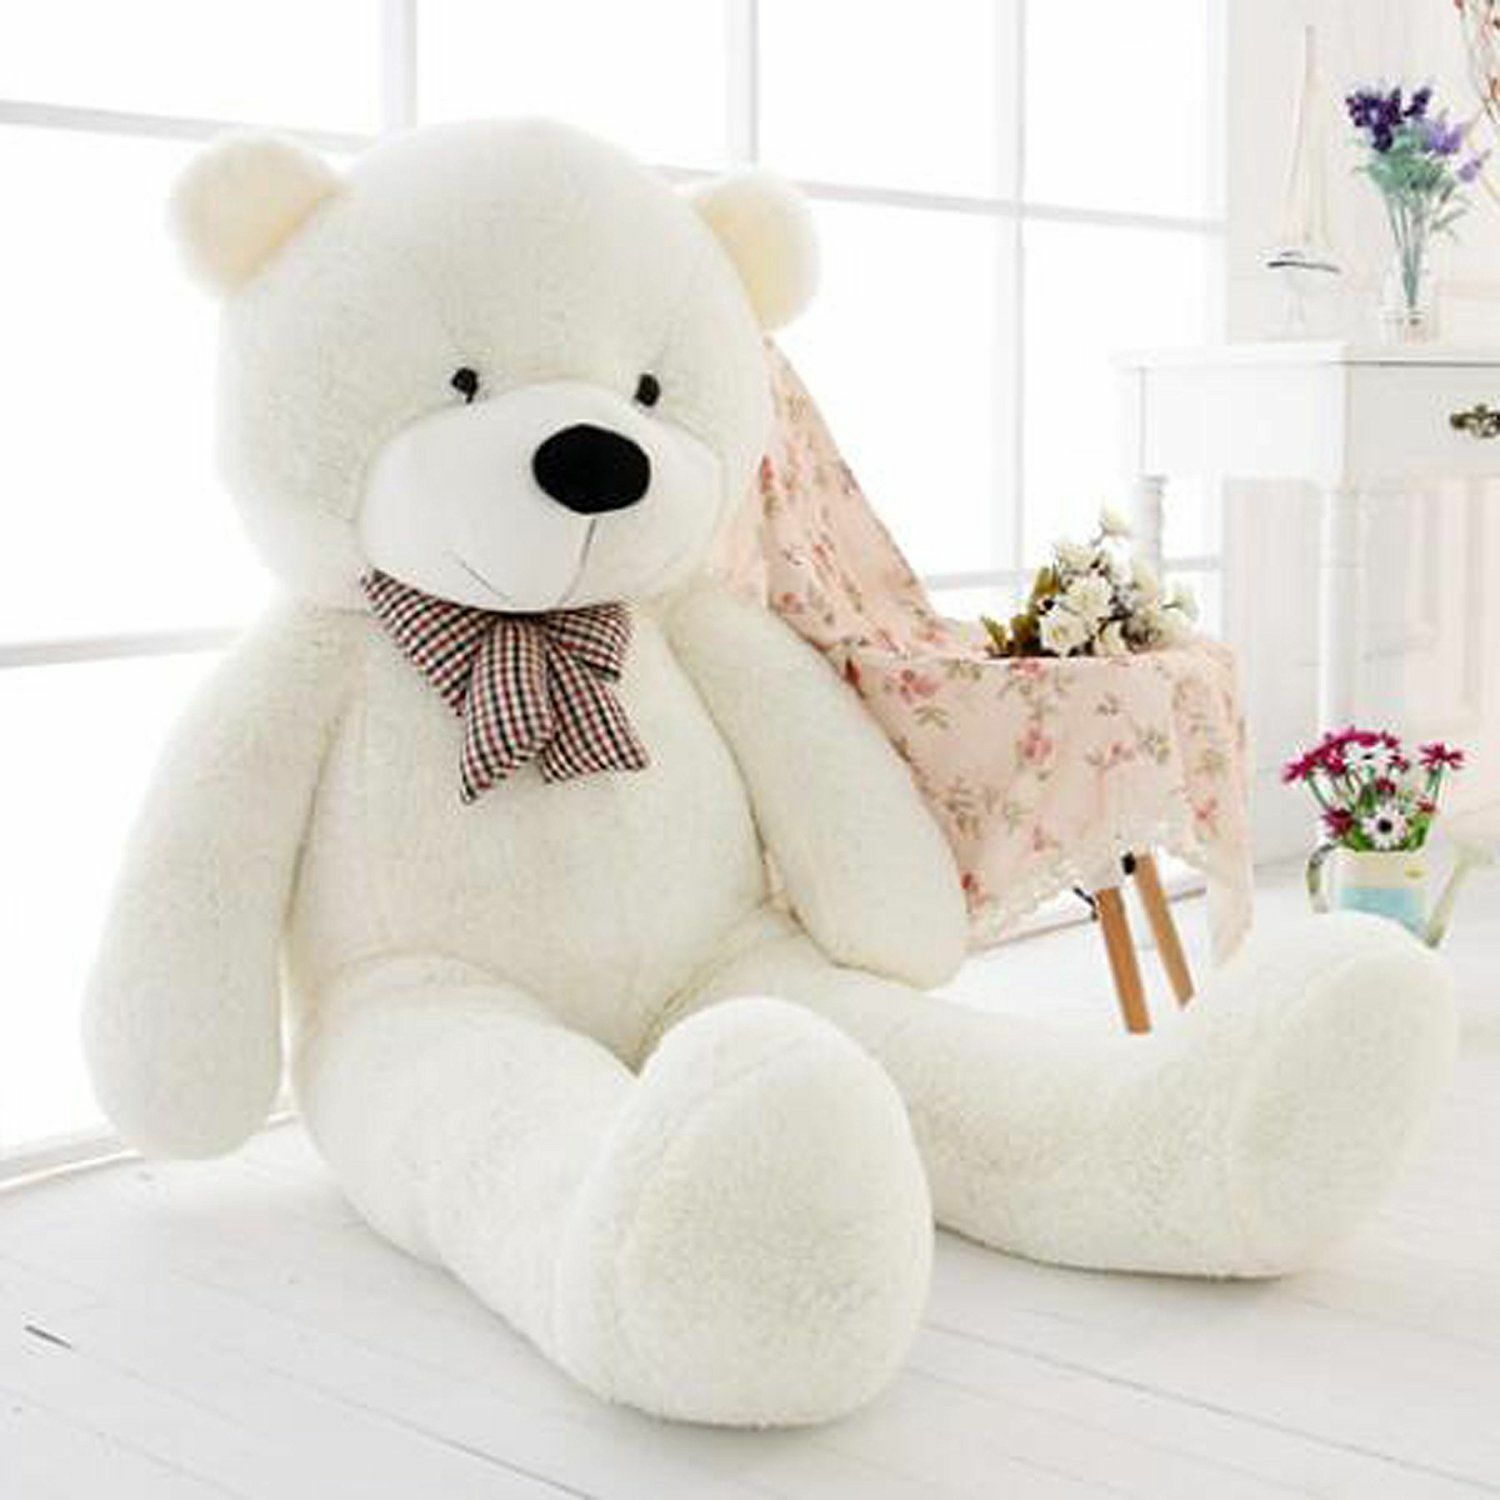 63in.Teddy Bear Stuffed Pillow Plush Soft toys Doll Gift Giant Huge Big bianca